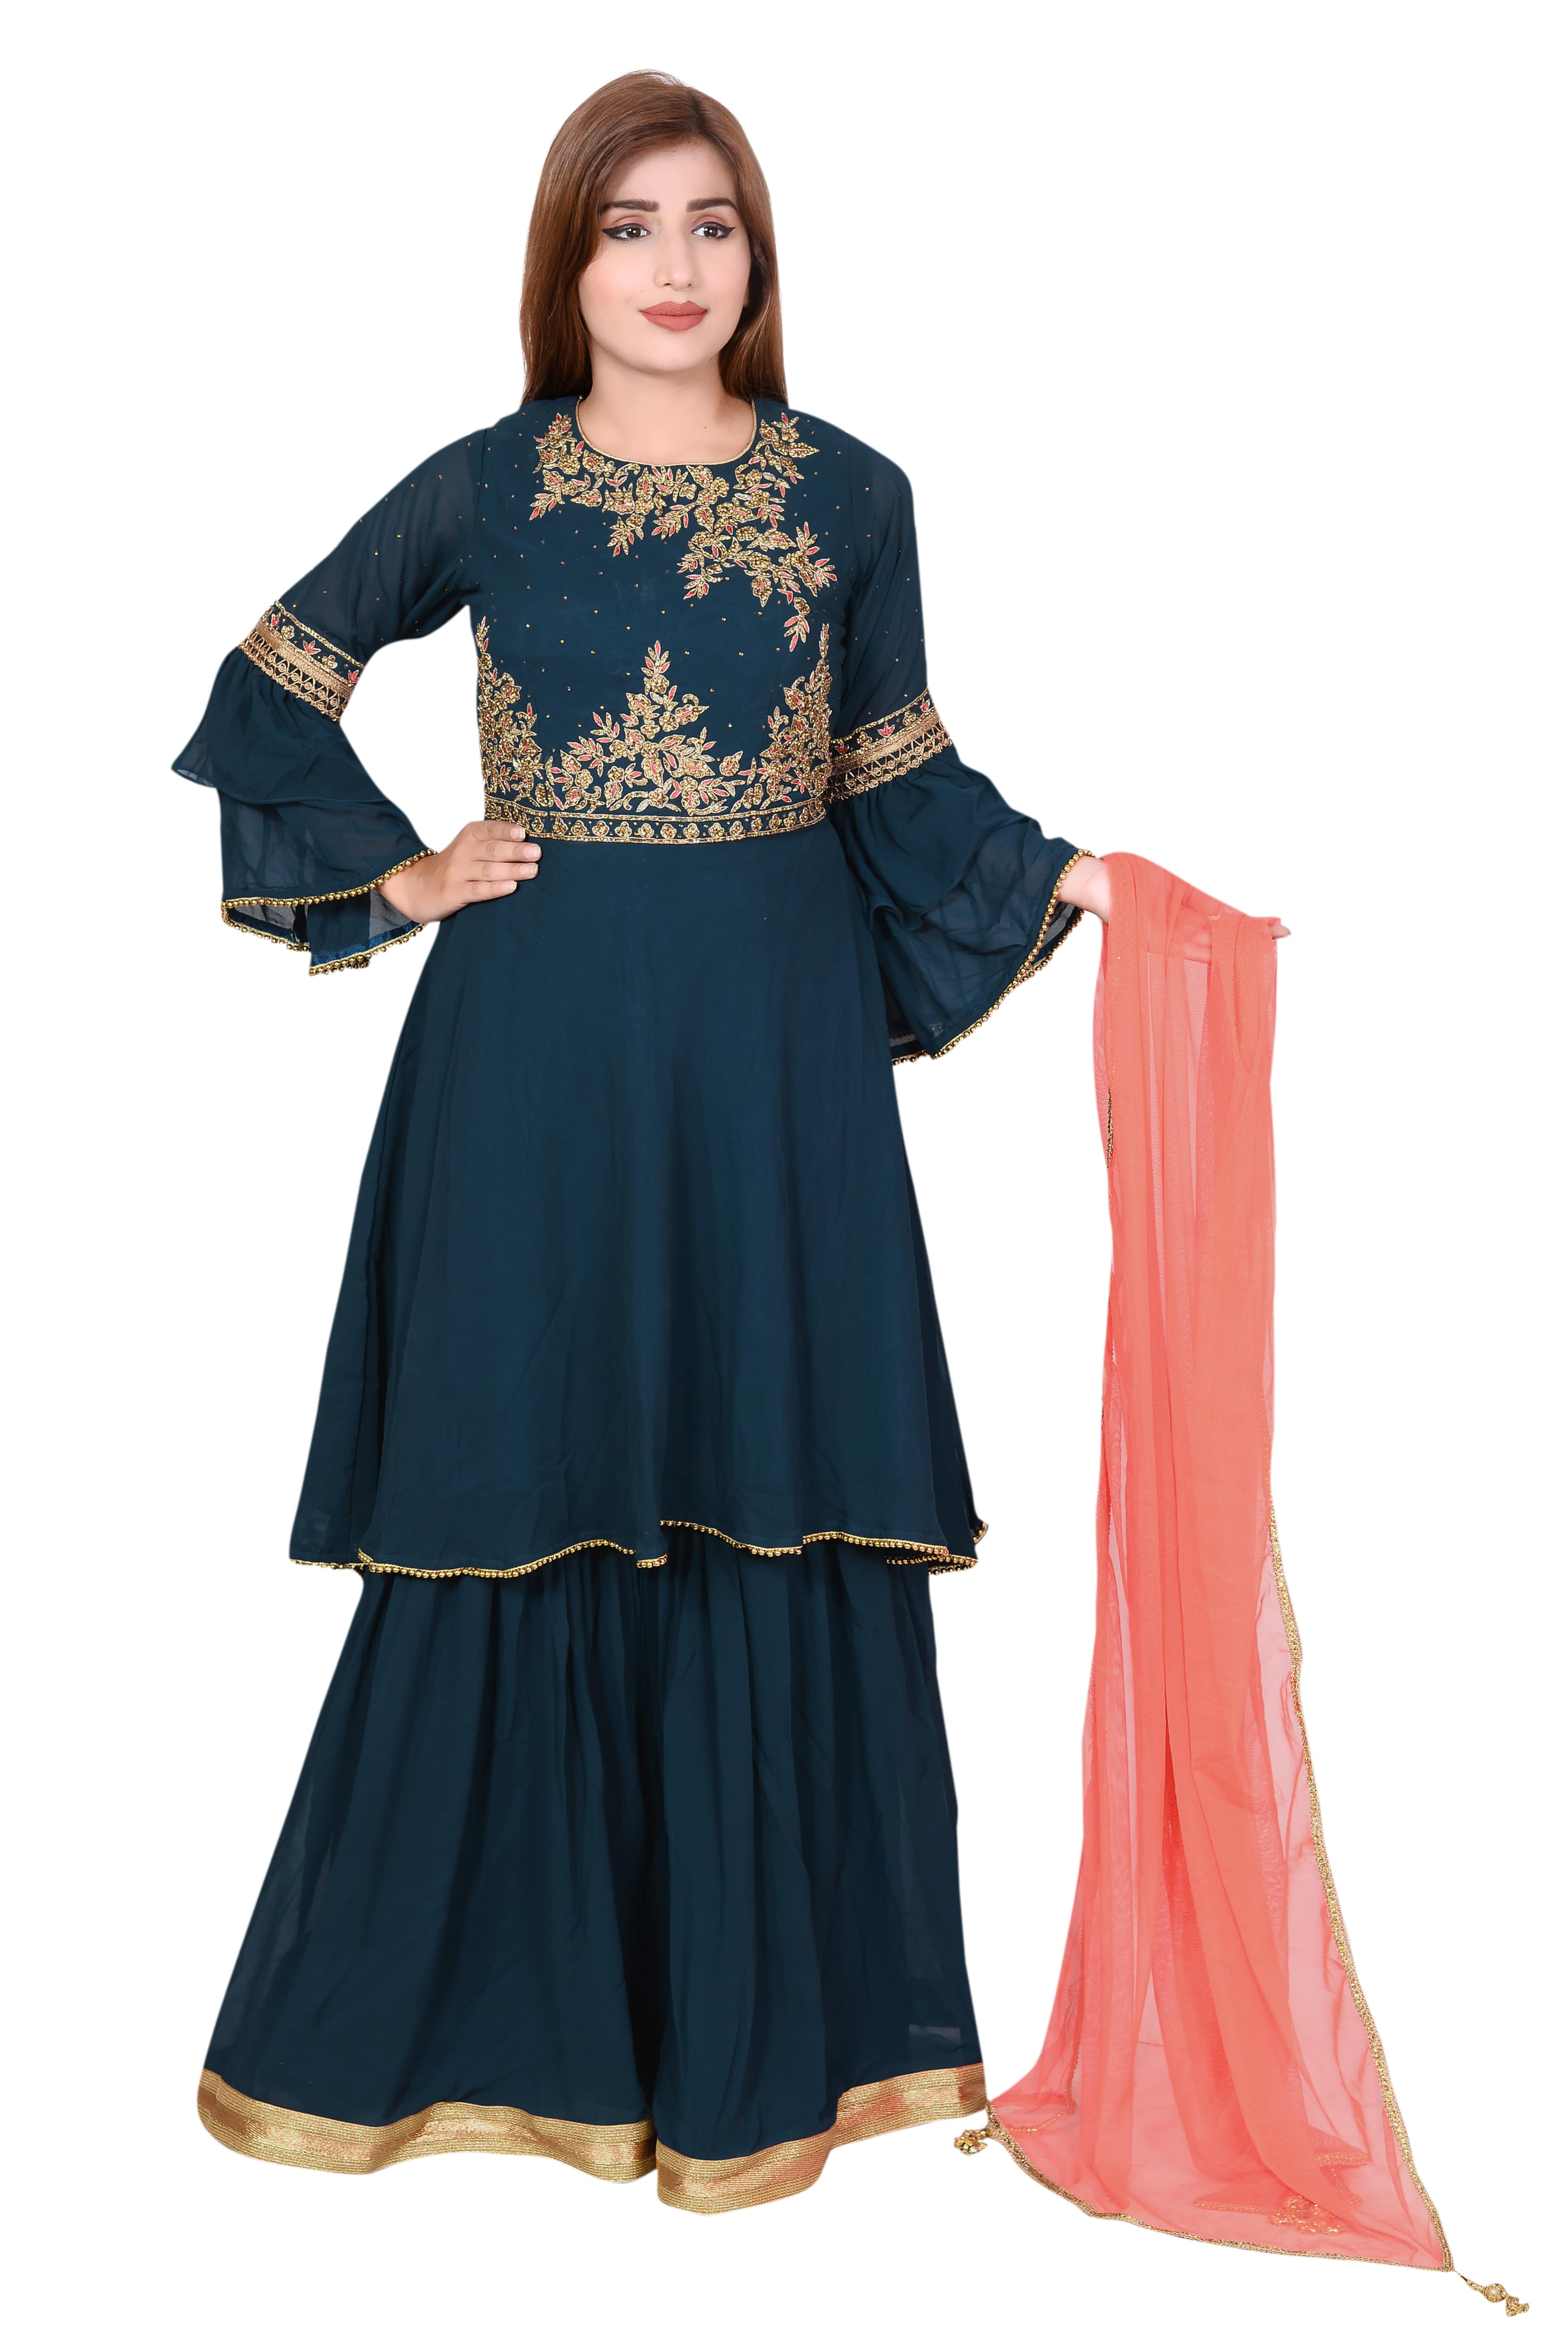 Ladies Ethnic Wear In Mathura